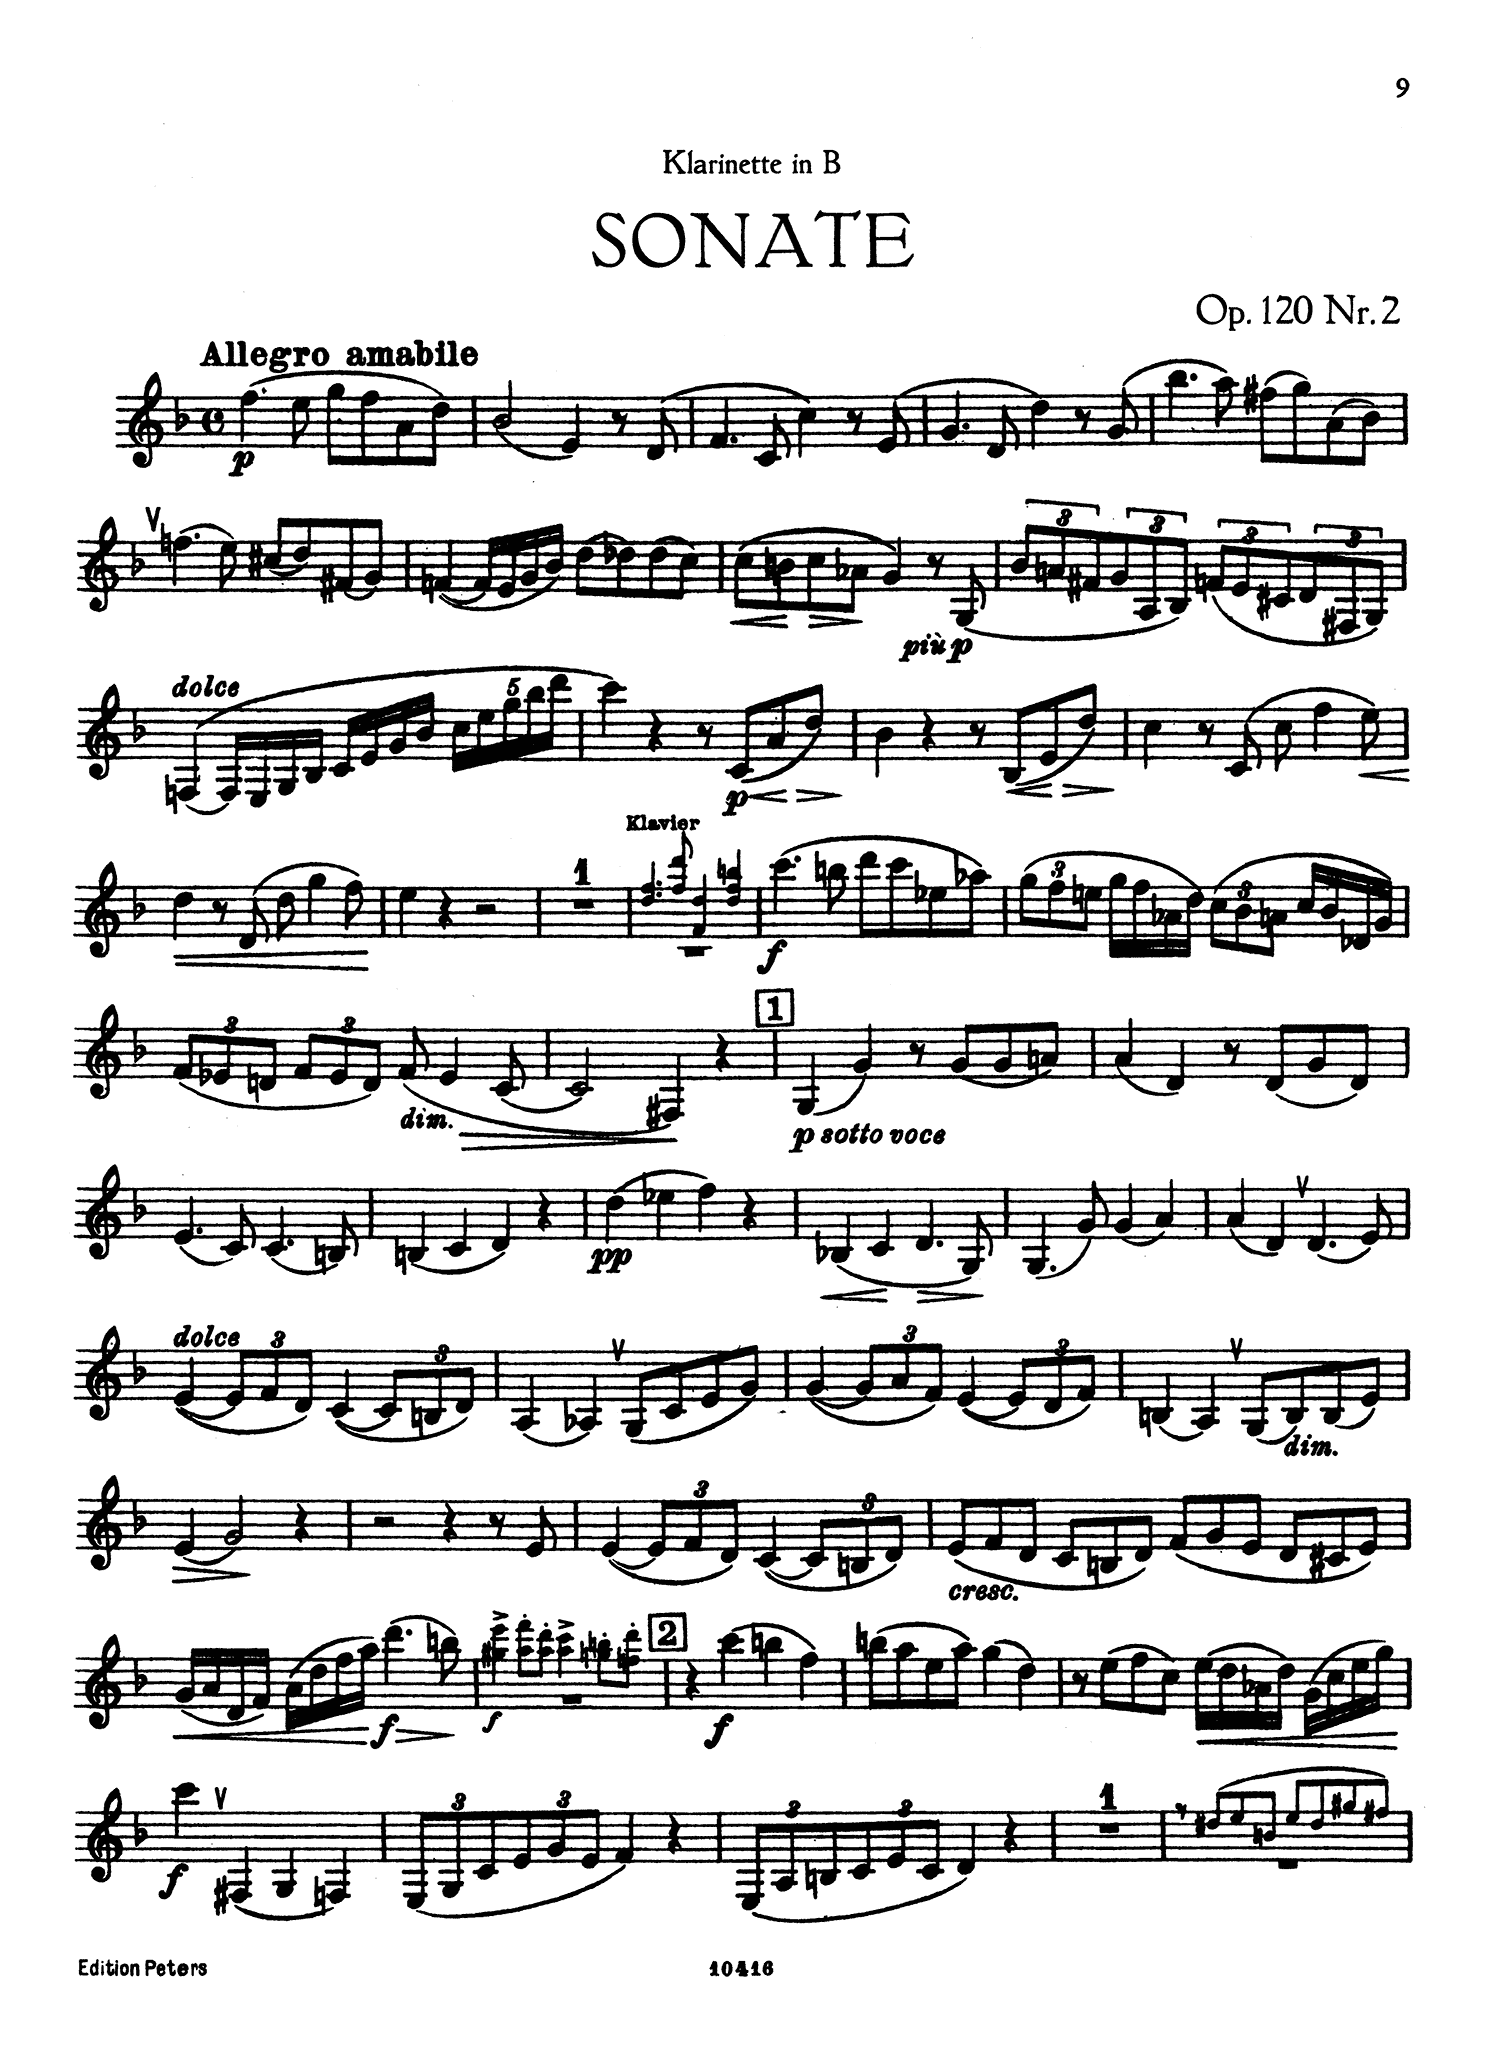 Sonata Op. 120 No. 1 Clarinet part